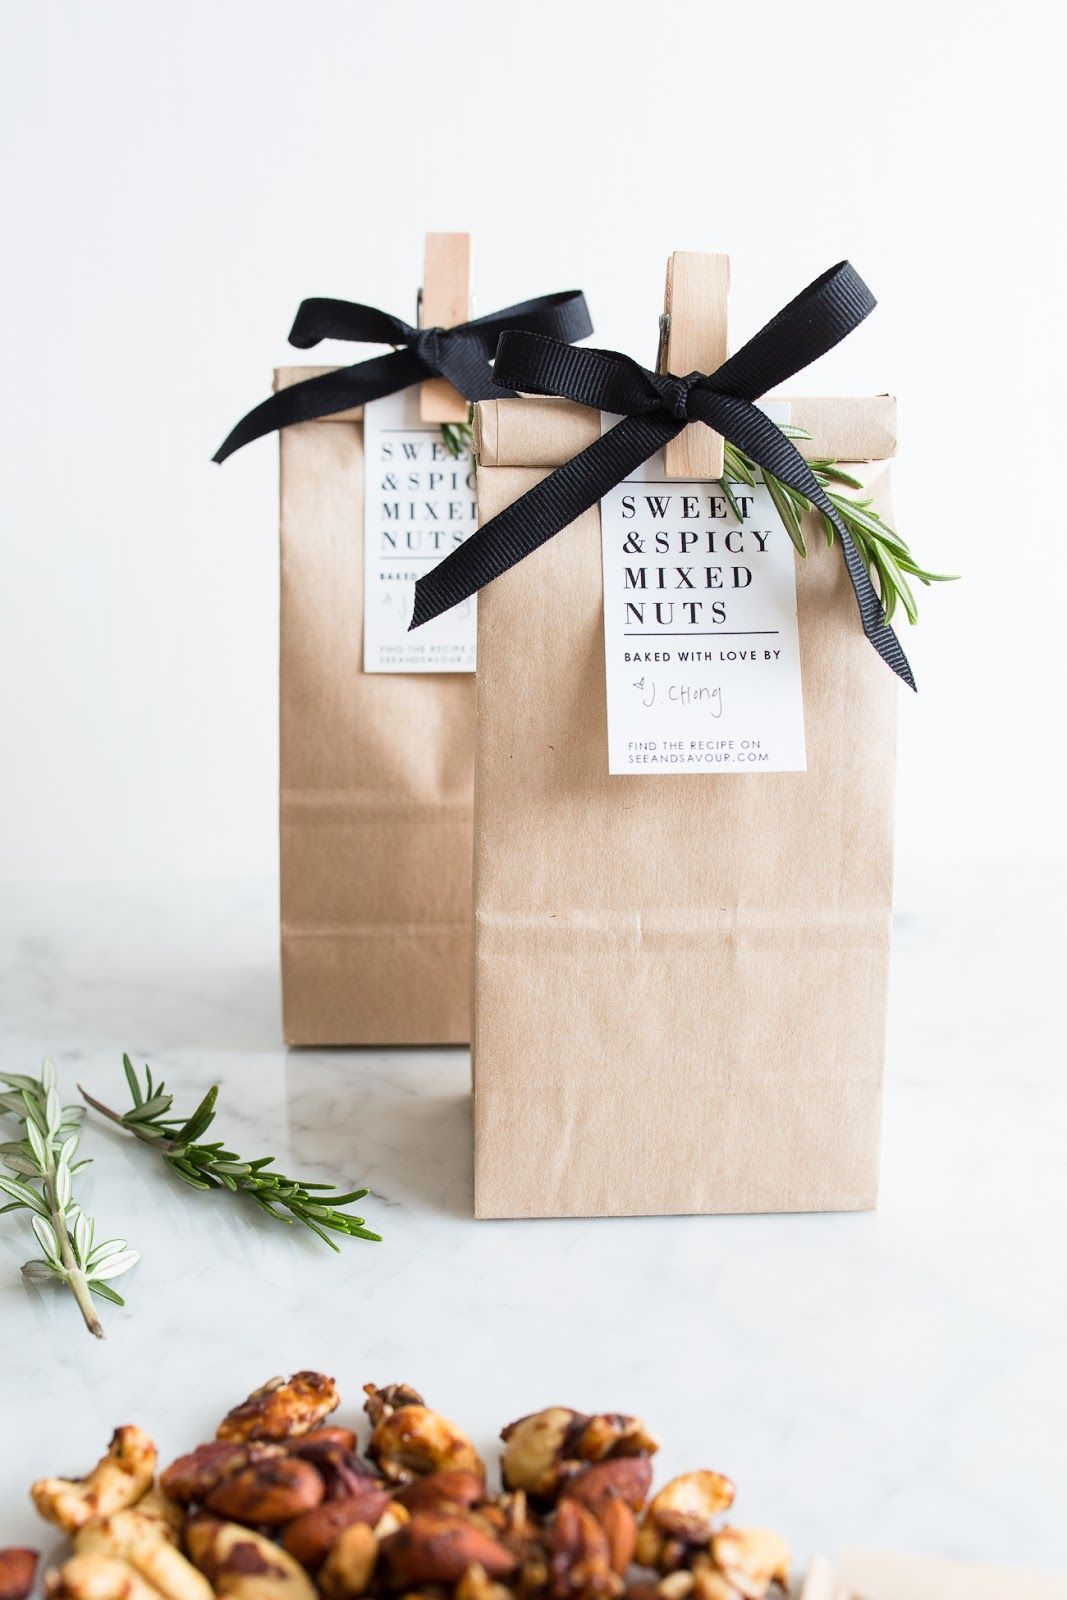 Sweet and Spicy Mixed Nuts | Wraps, Gift and Packaging ideas